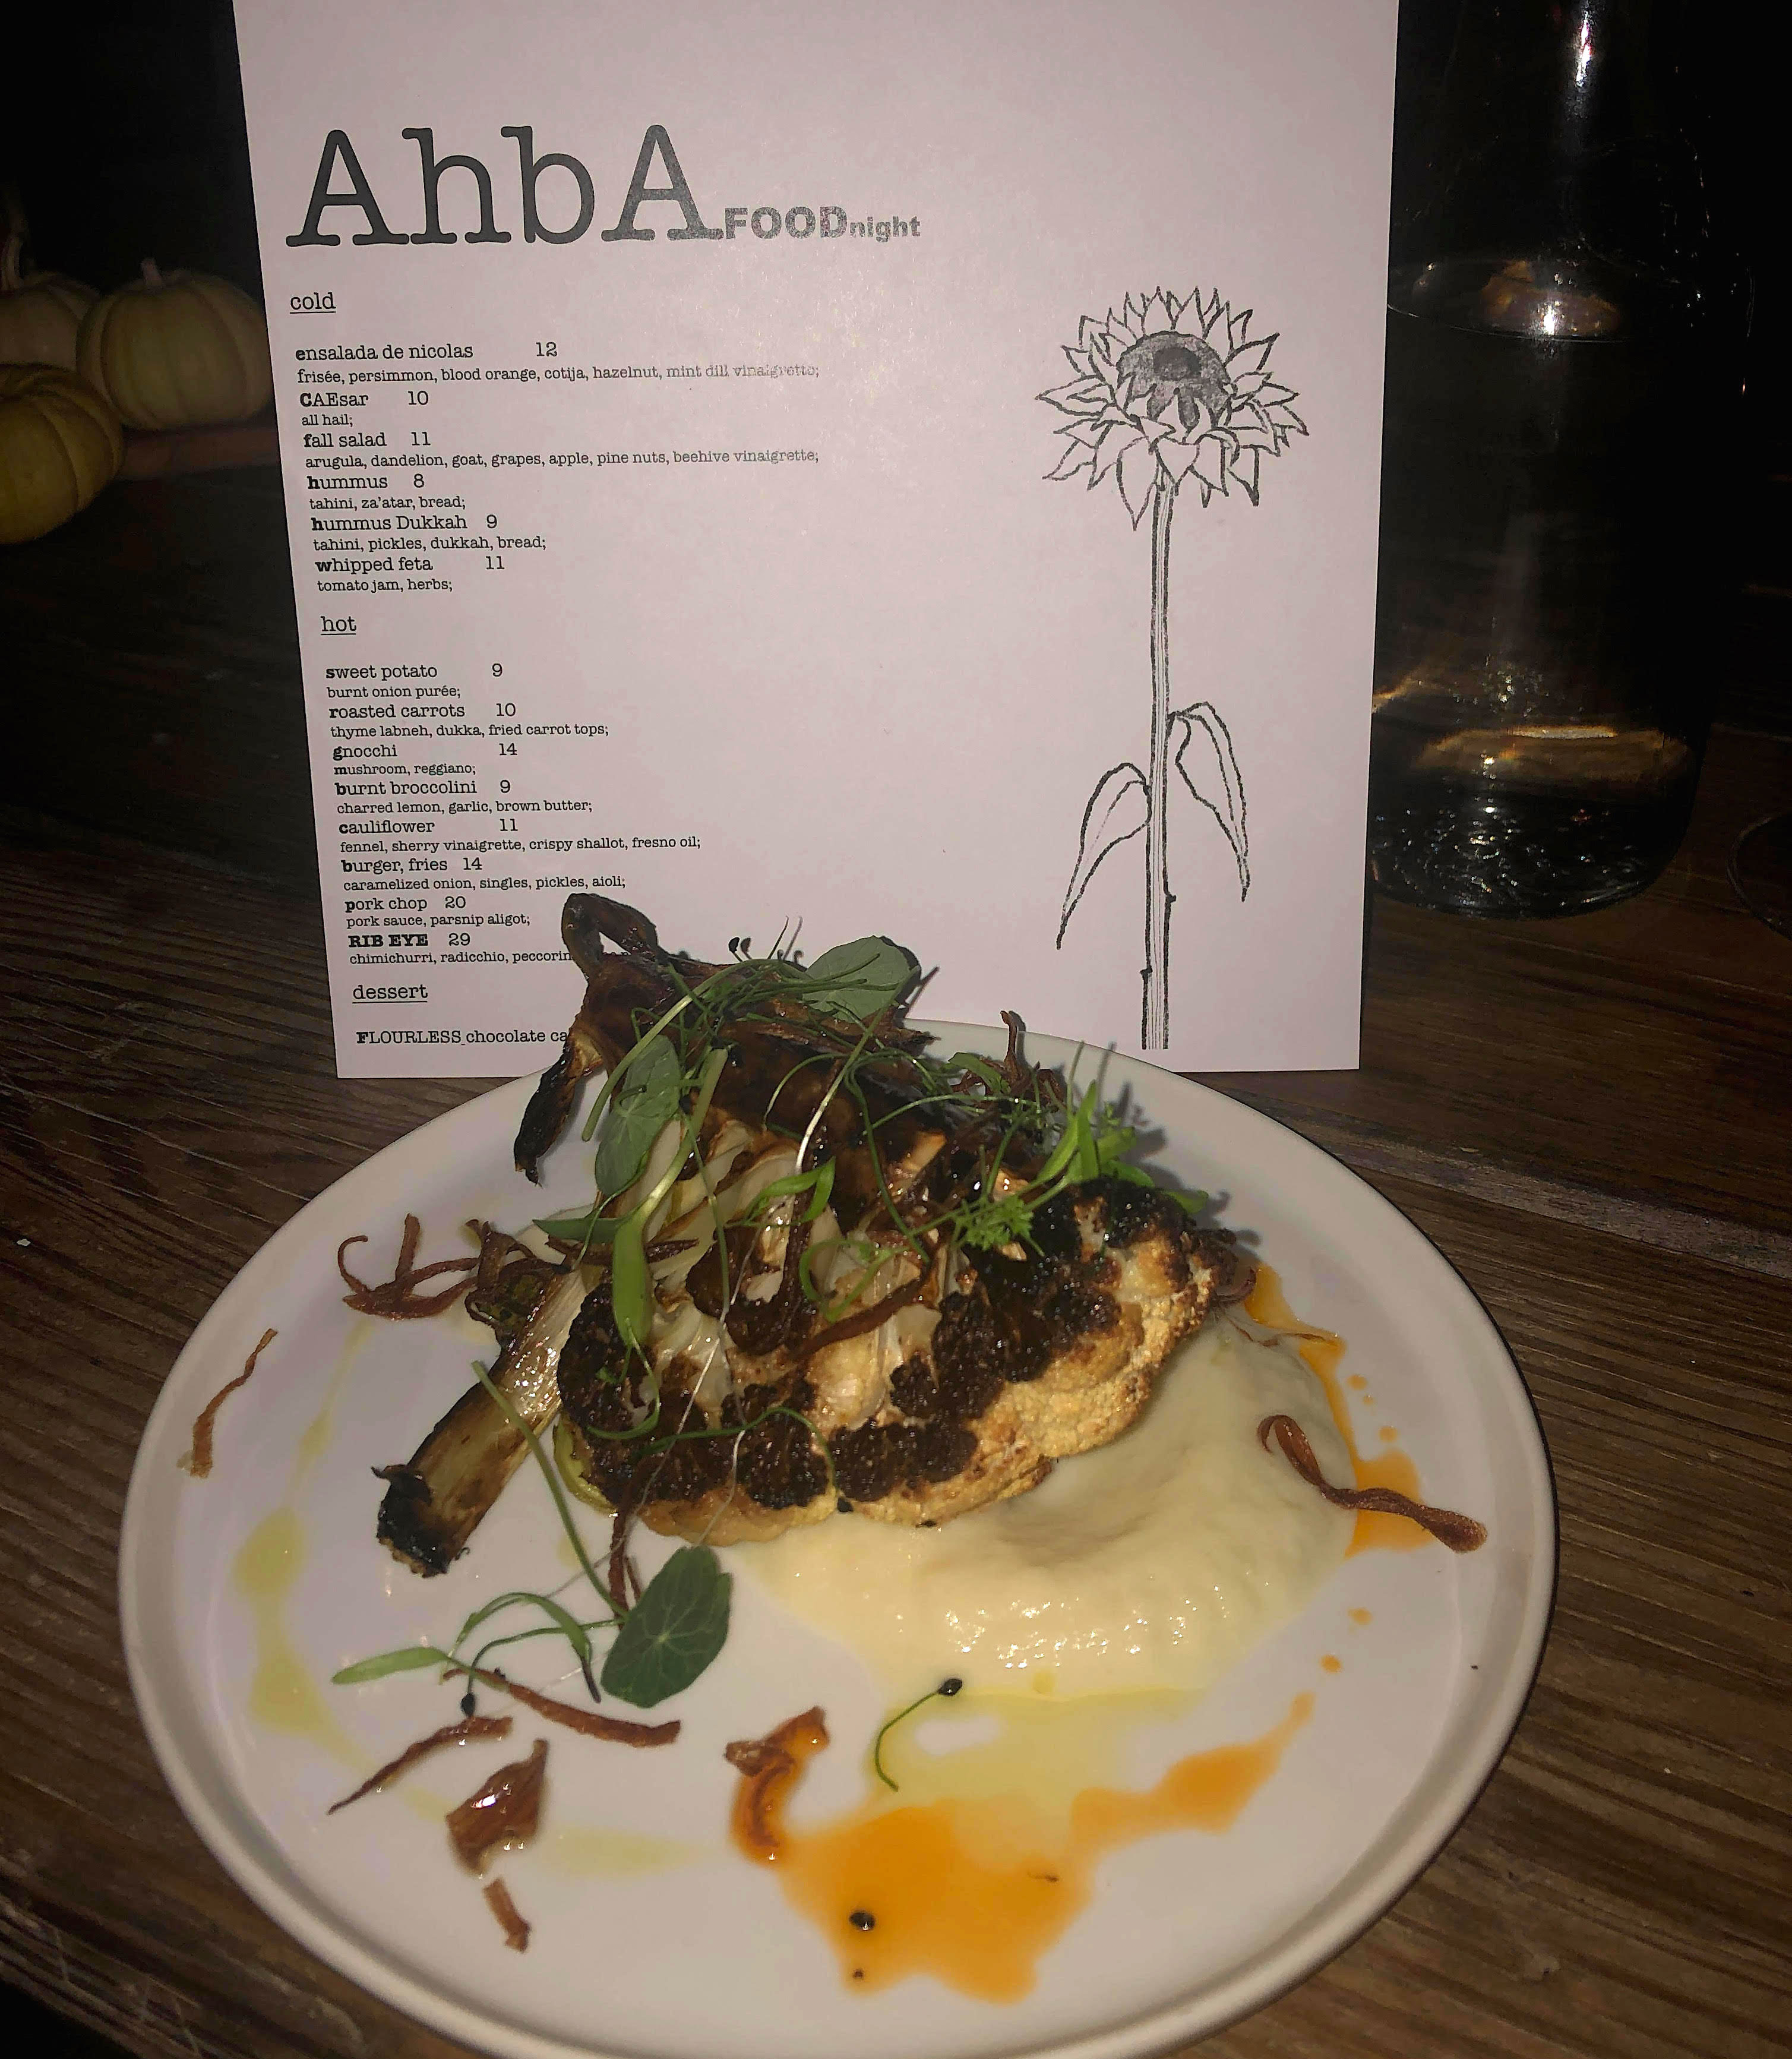 AhbA's dinner cauliflower